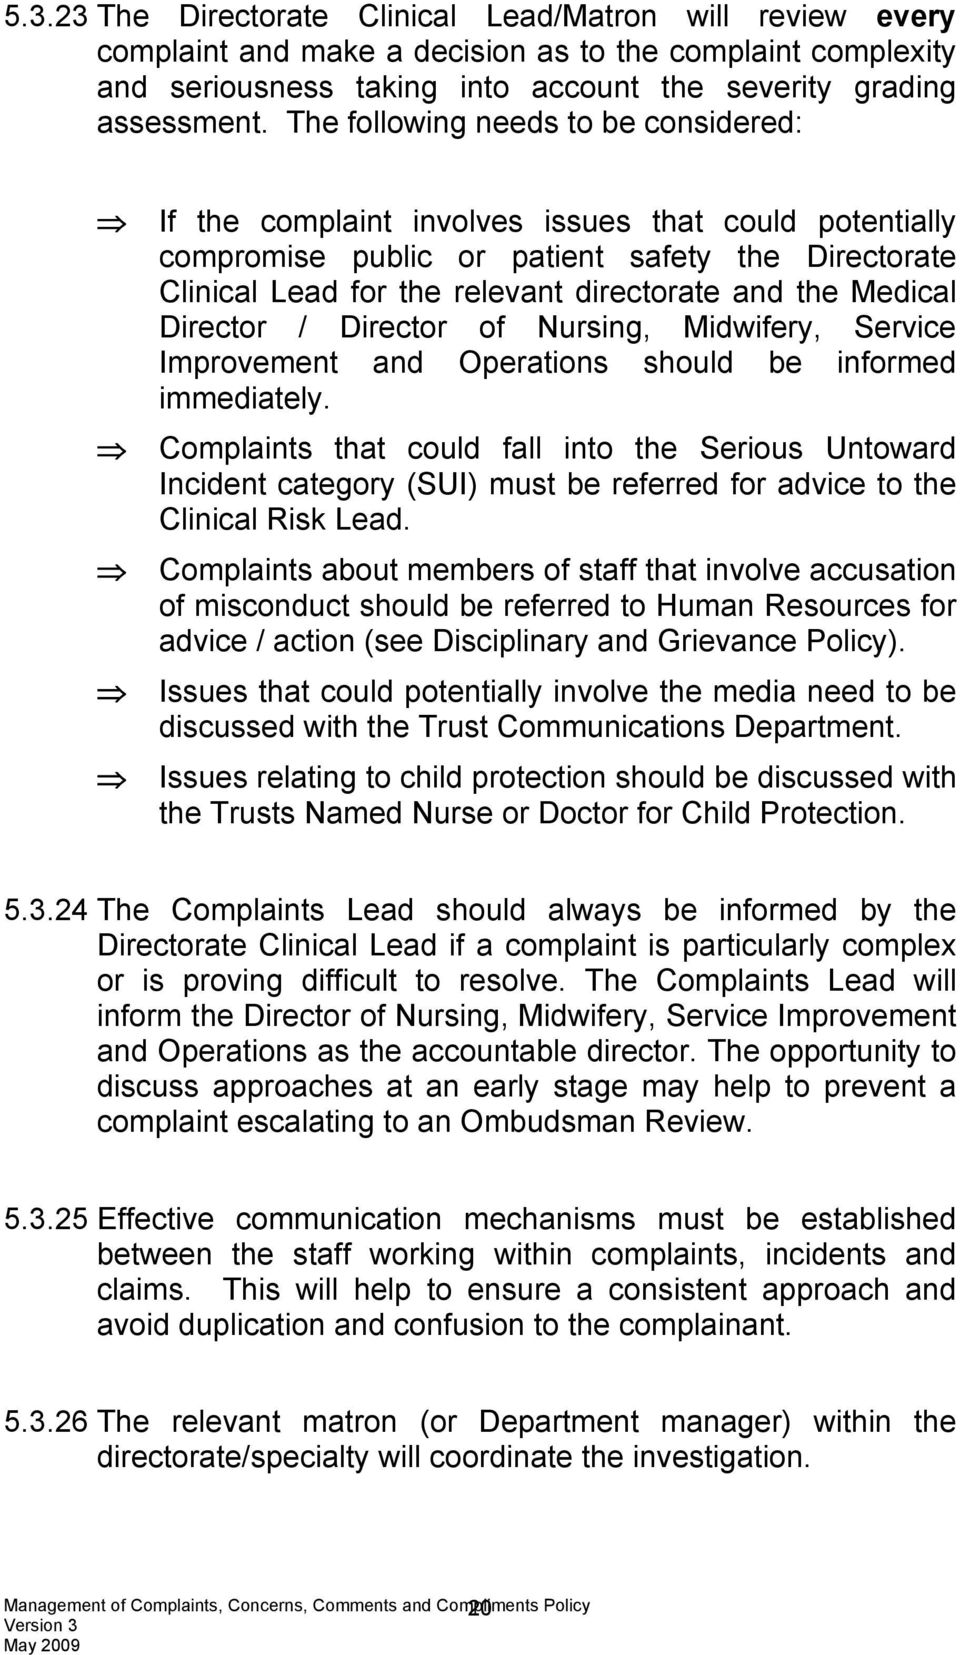 Medical Director / Director of Nursing, Midwifery, Service Improvement and Operations should be informed immediately.